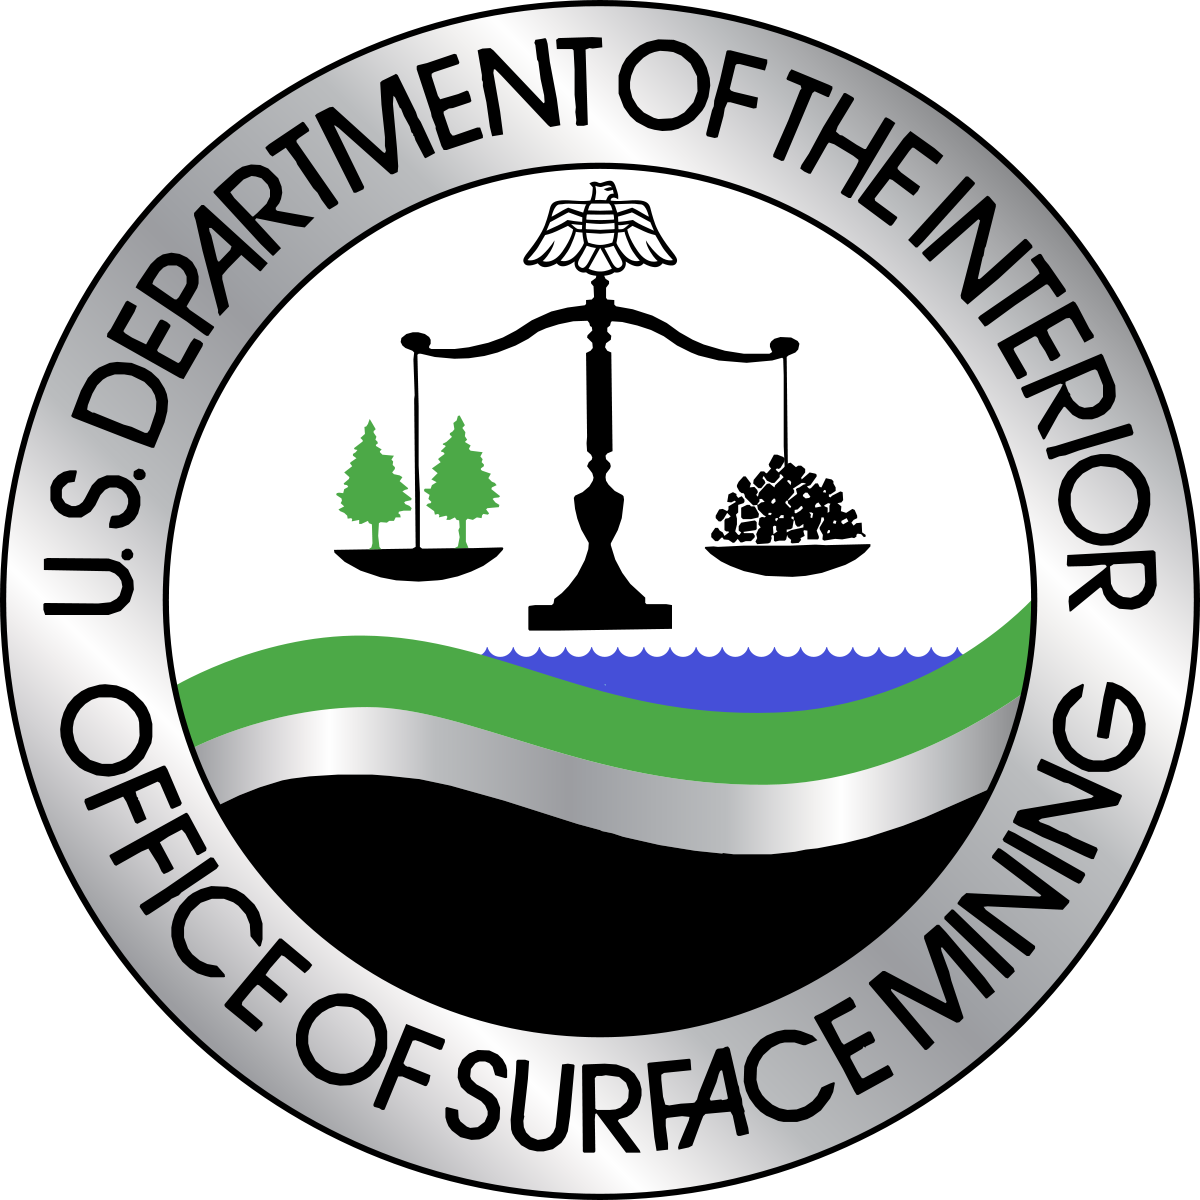 Office of surface mining. Retro clipart enforcement